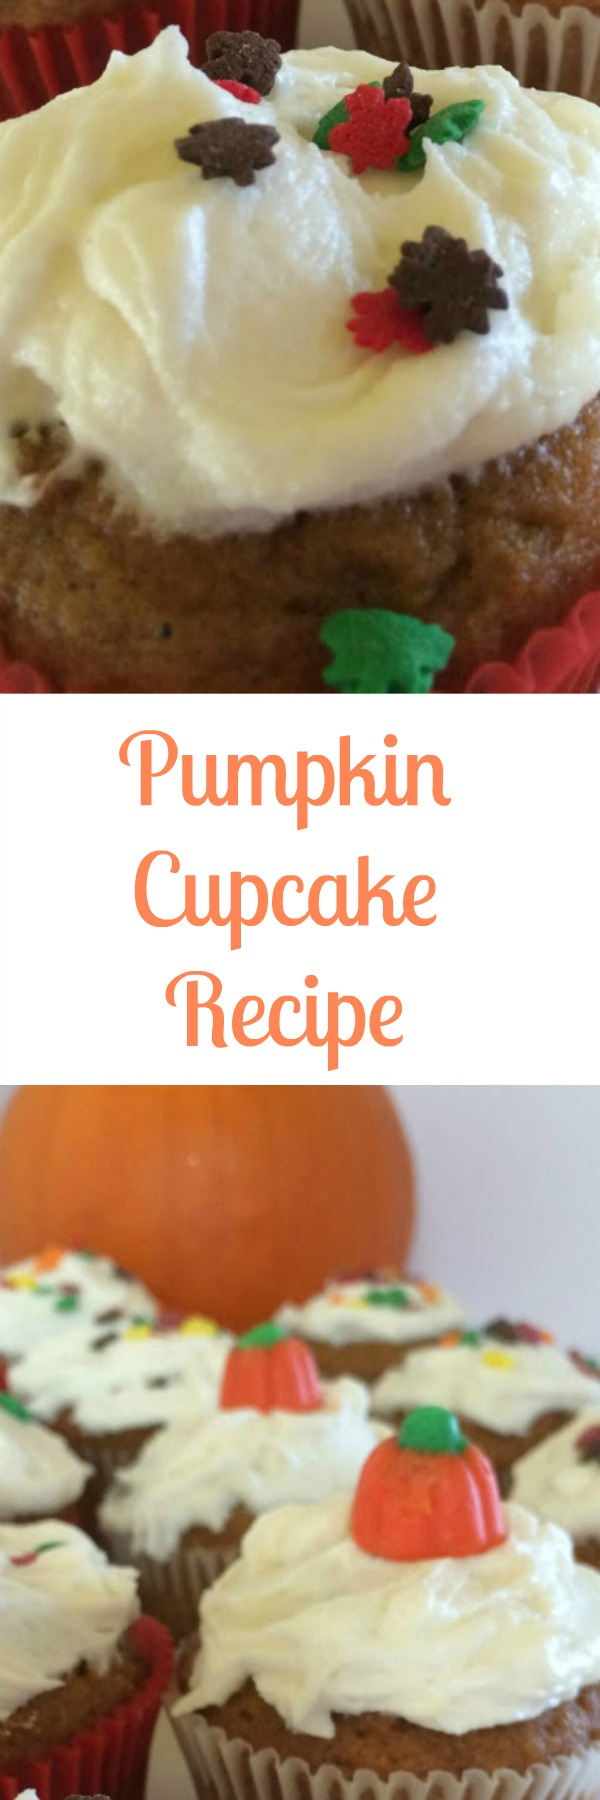 This easy Pumpkin Cupcake recipe is a great, kid friendly alternative to pumpkin pie during your Fall and Thanksgiving parties. Easy to make and they taste great too!